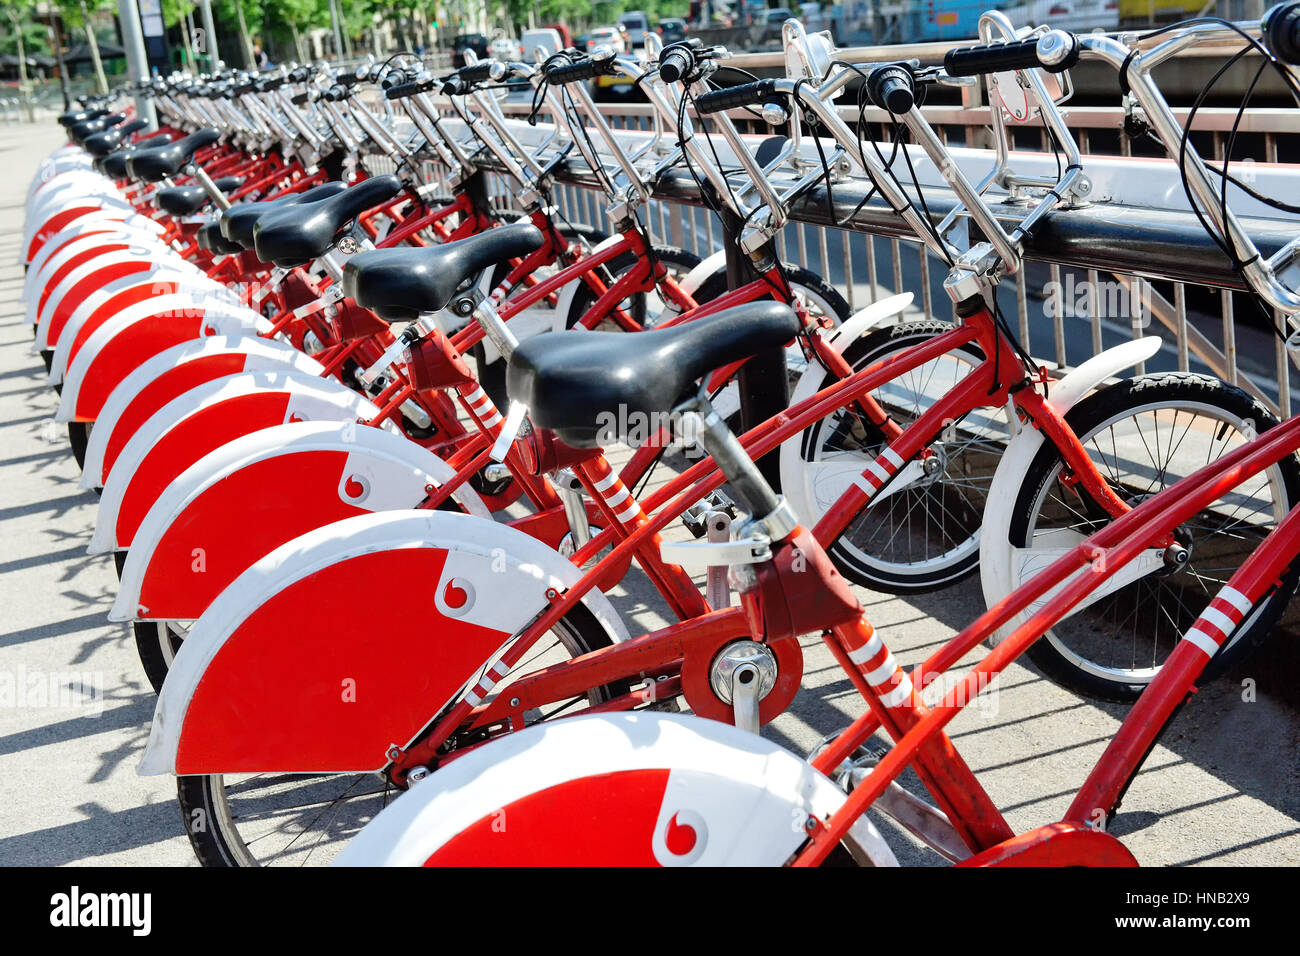 Bicycle parking sharing station in Barcelona, Spain, Europe - Stock Image